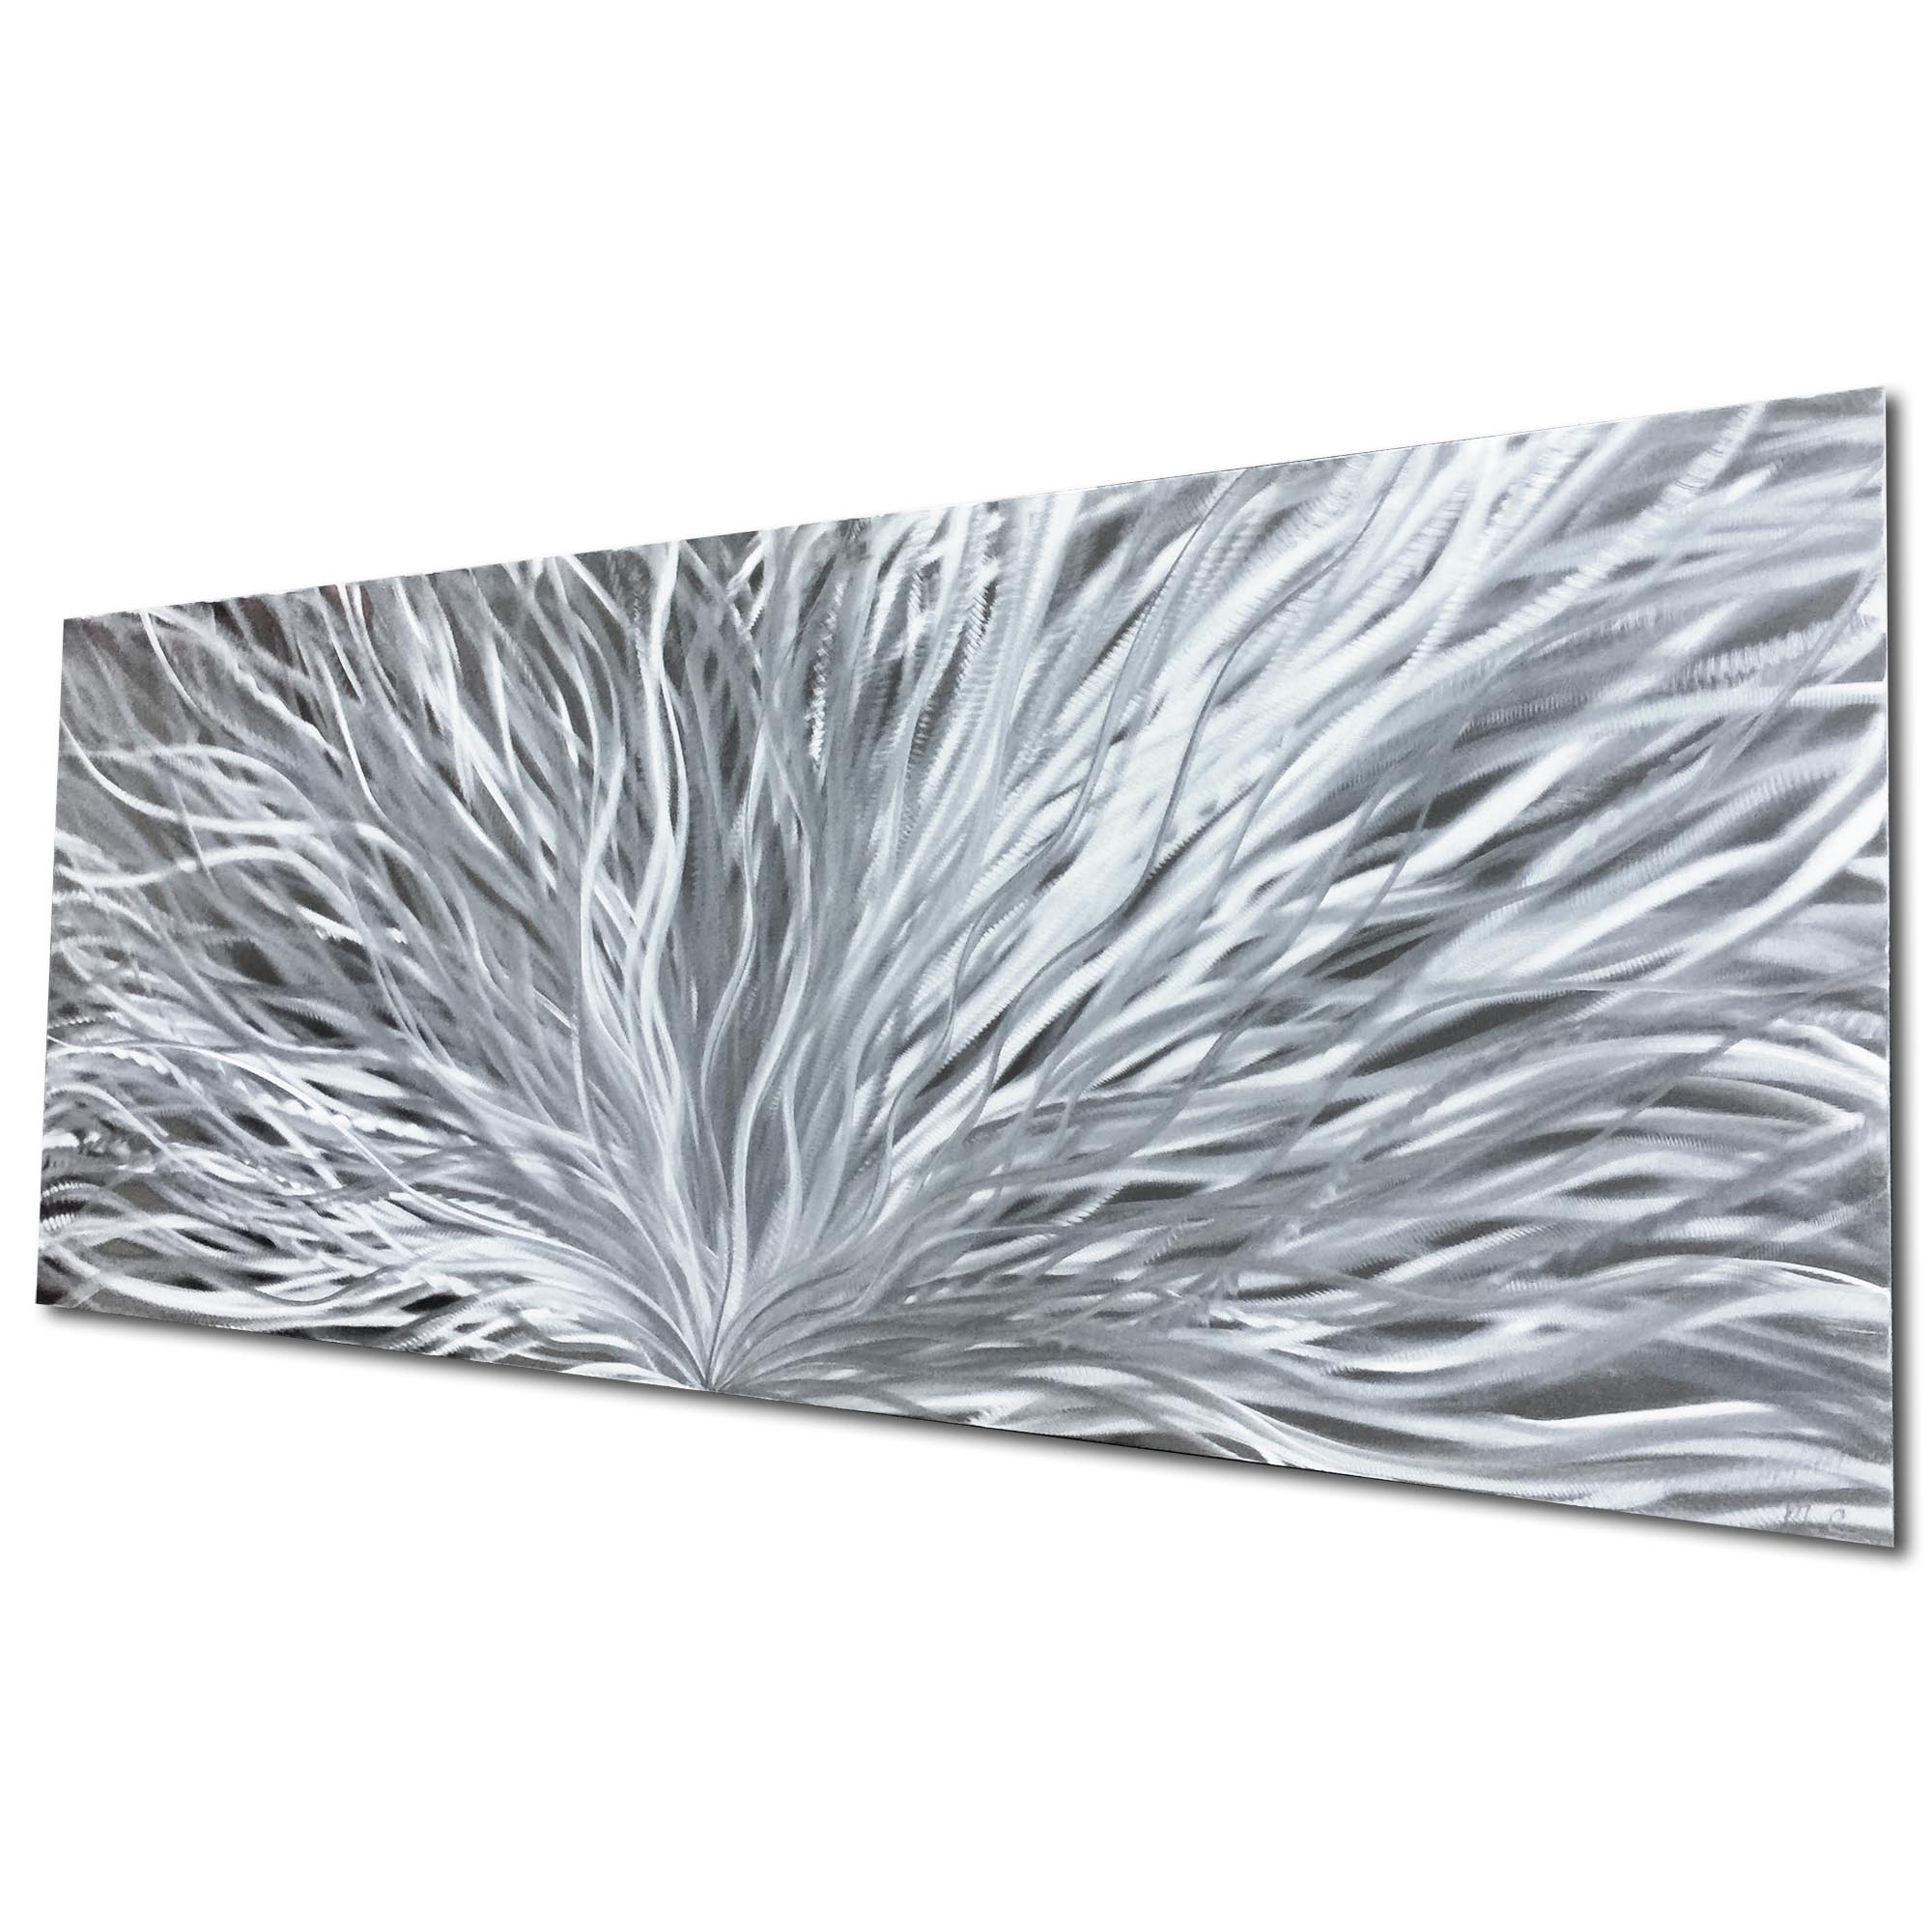 Blooming Silver by Helena Martin - Original Abstract Art on Ground Metal - Image 3